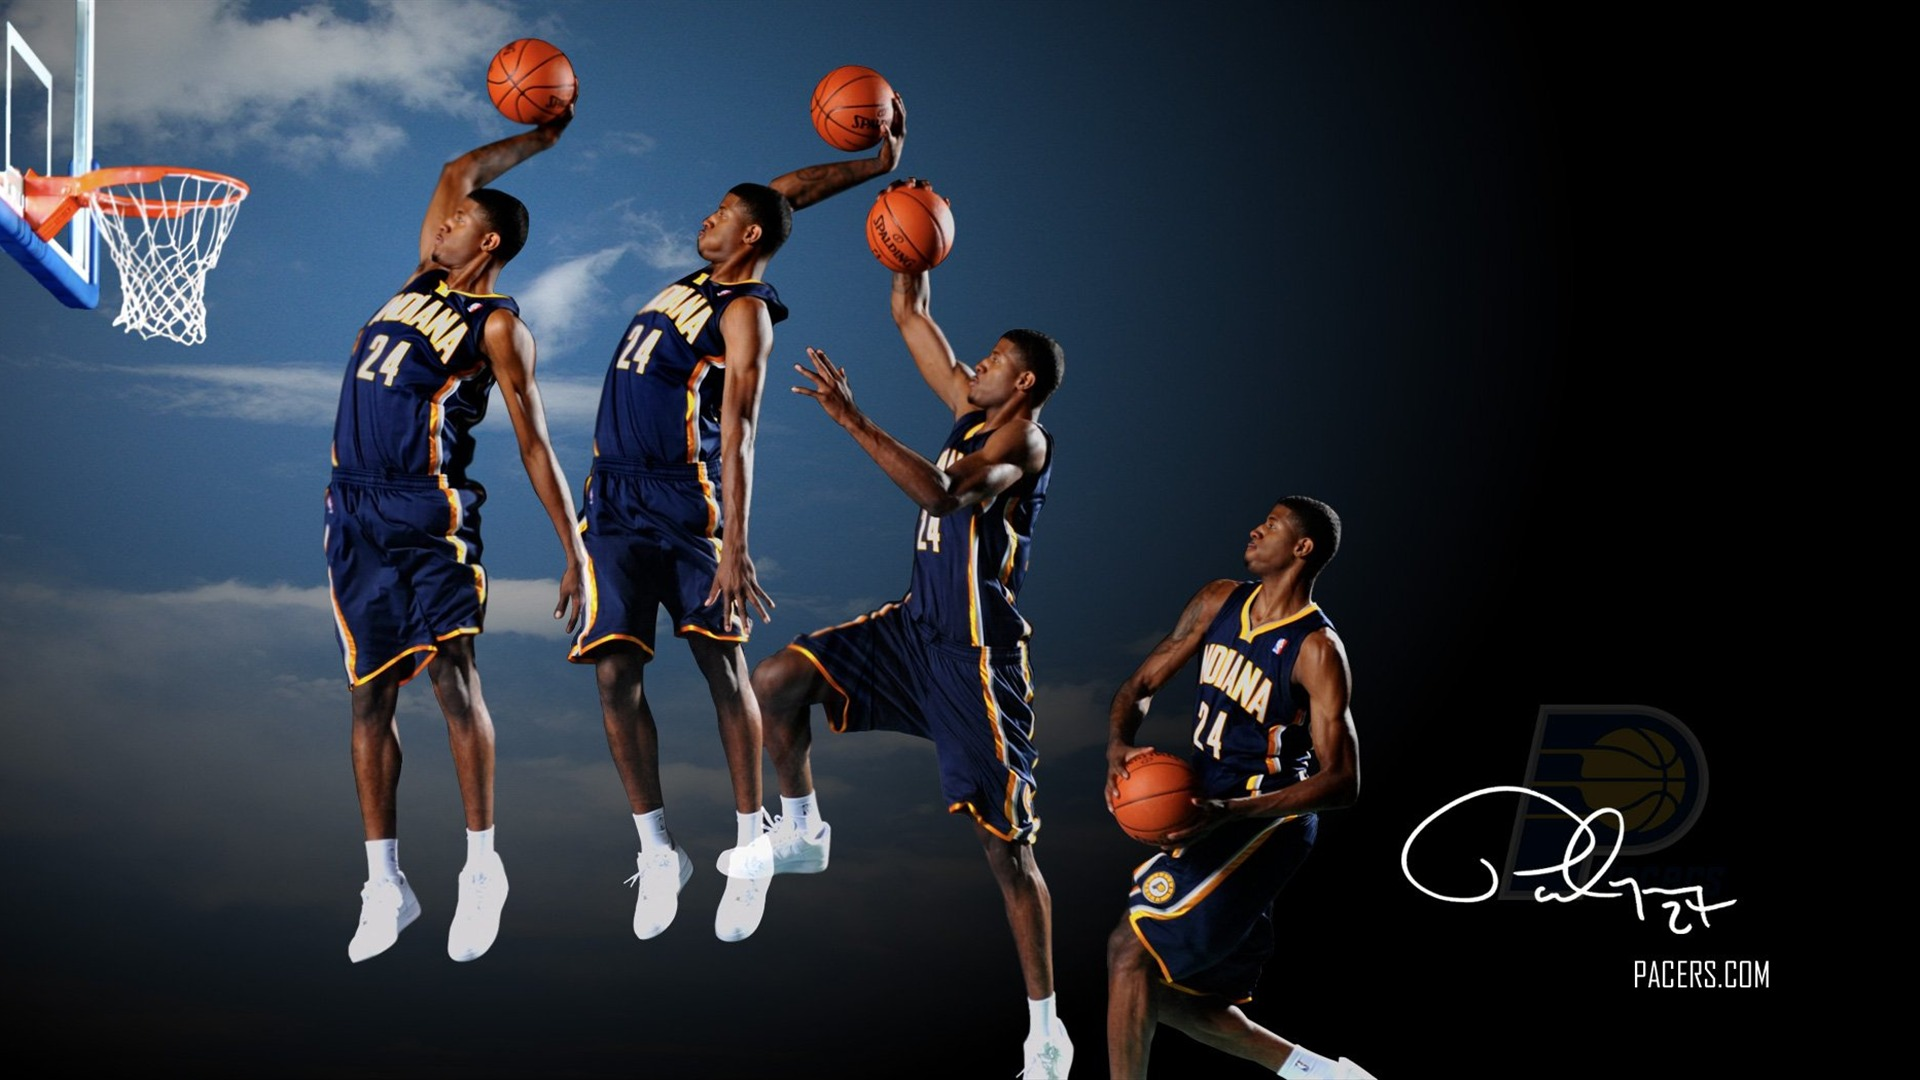 kevin durant wallpapers iphone